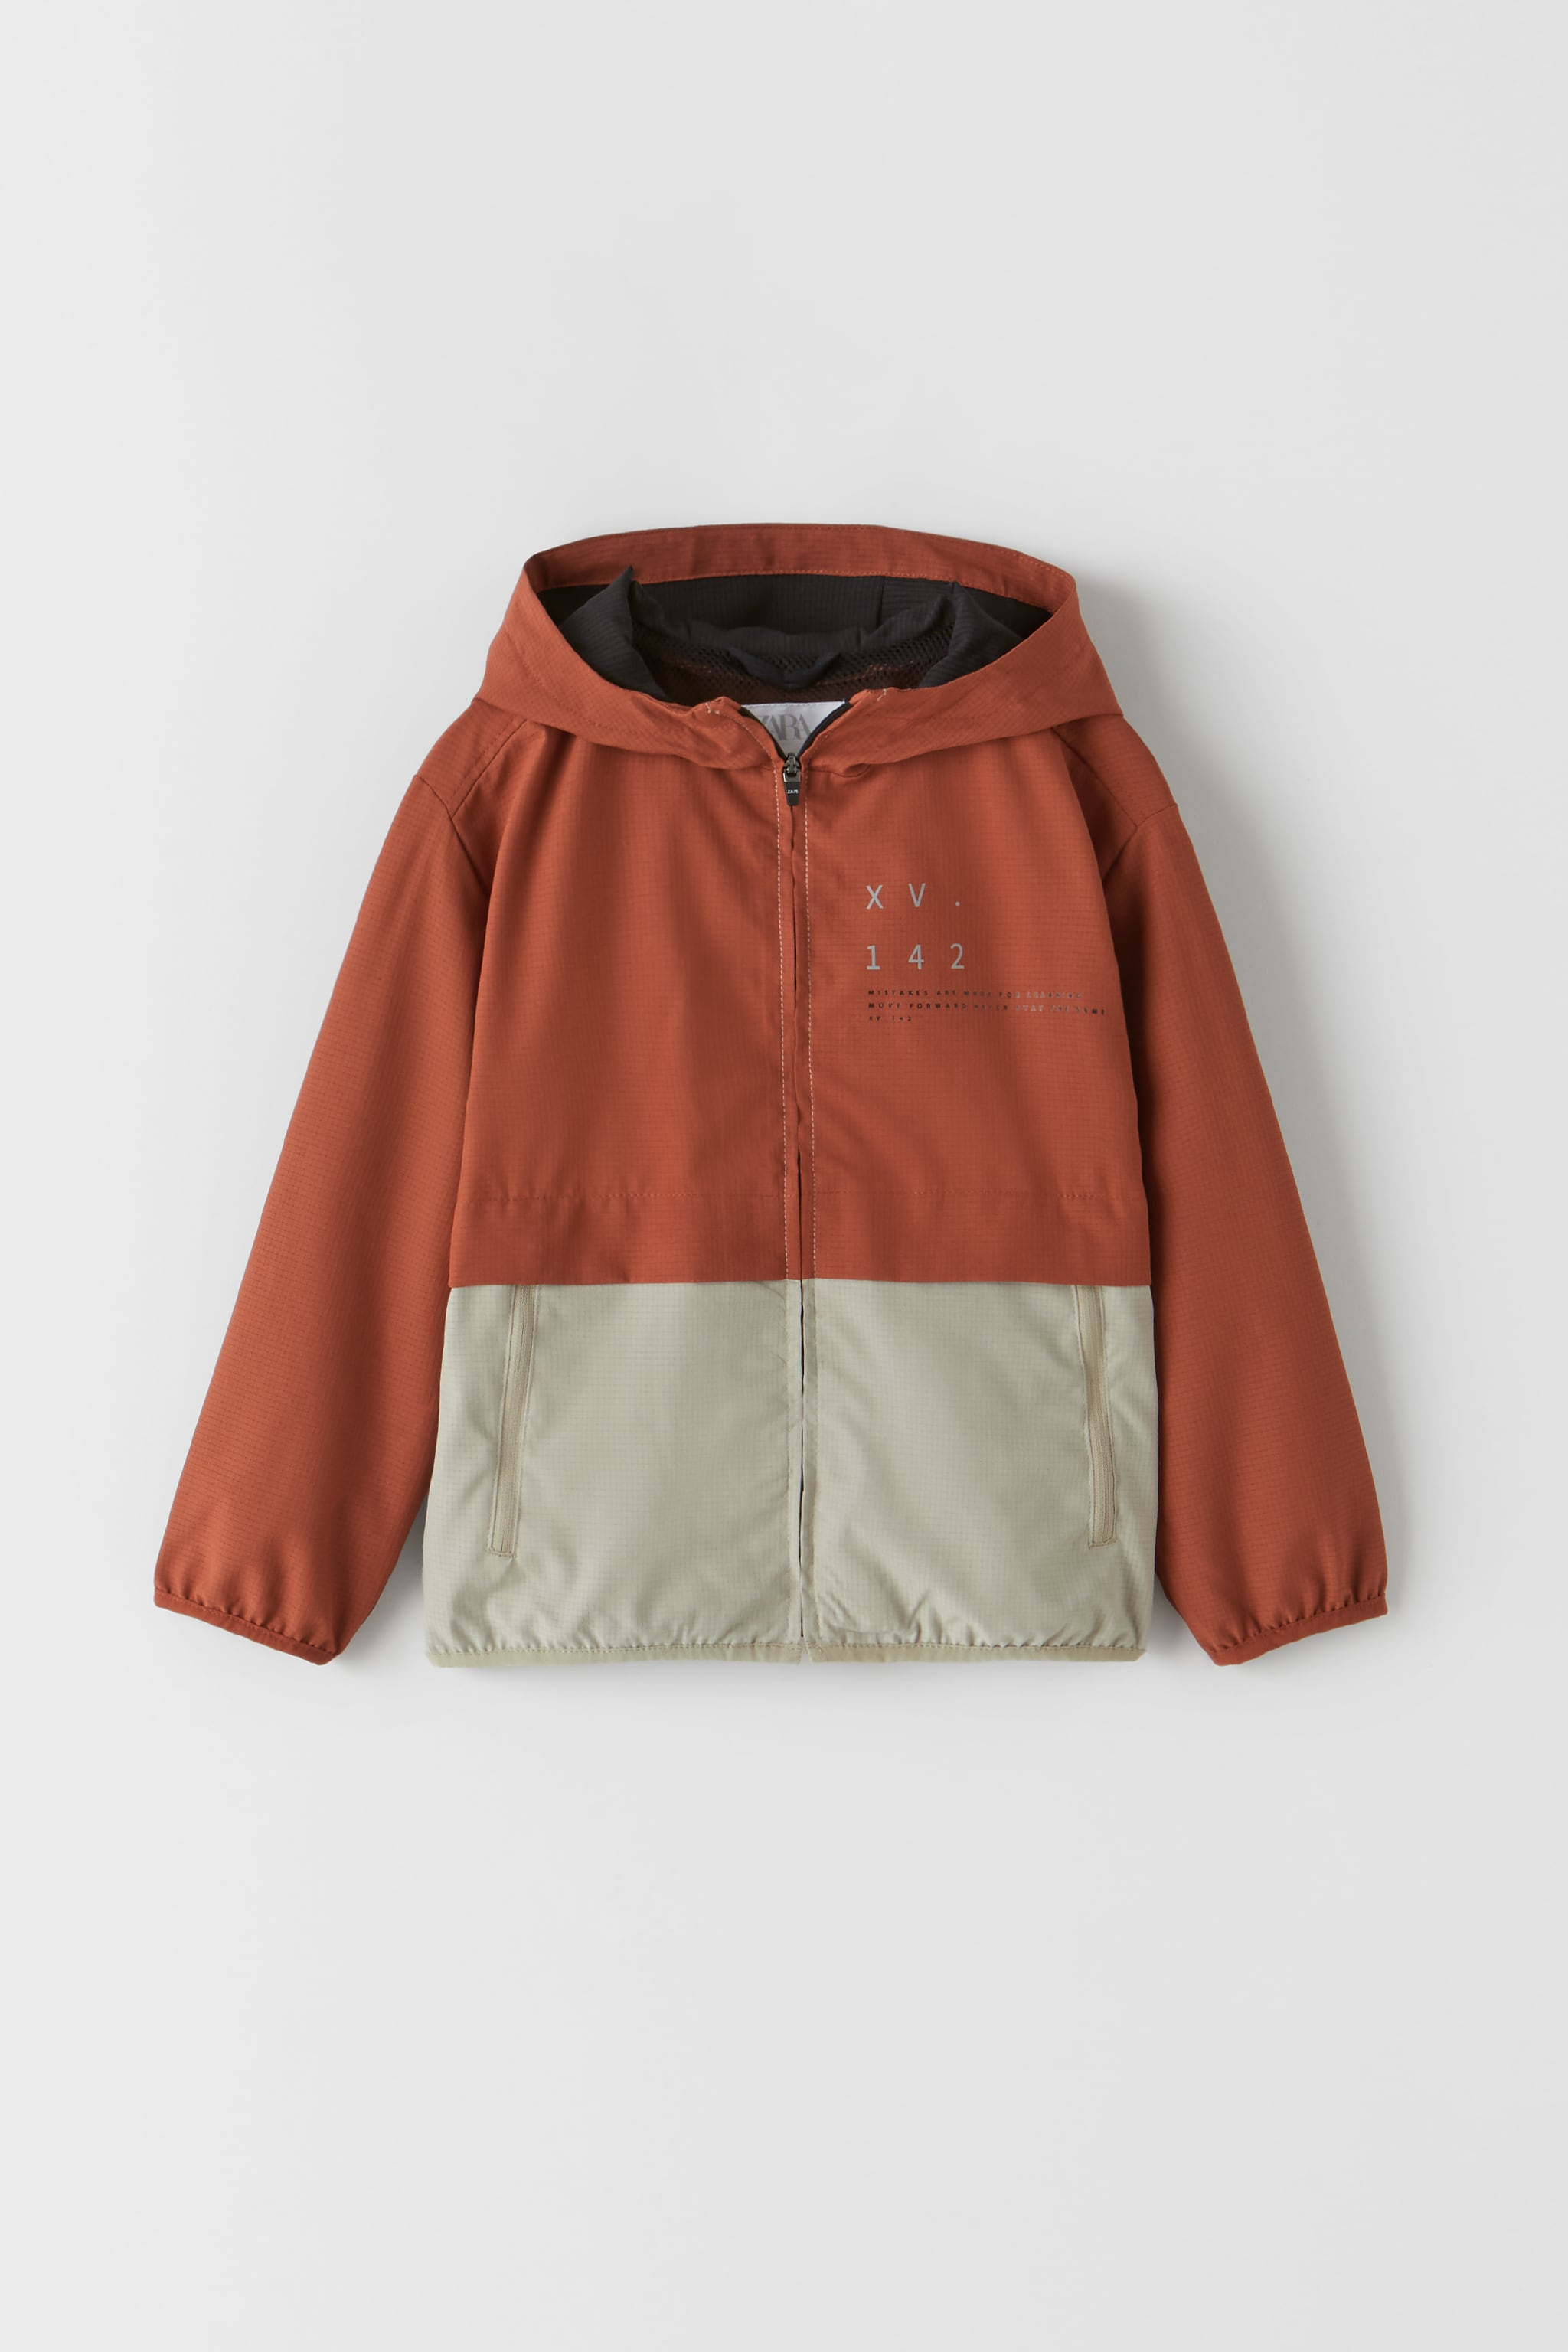 Zara LIGHTWEIGHT COLORBLOCK RIPSTOP SPORTY JACKET